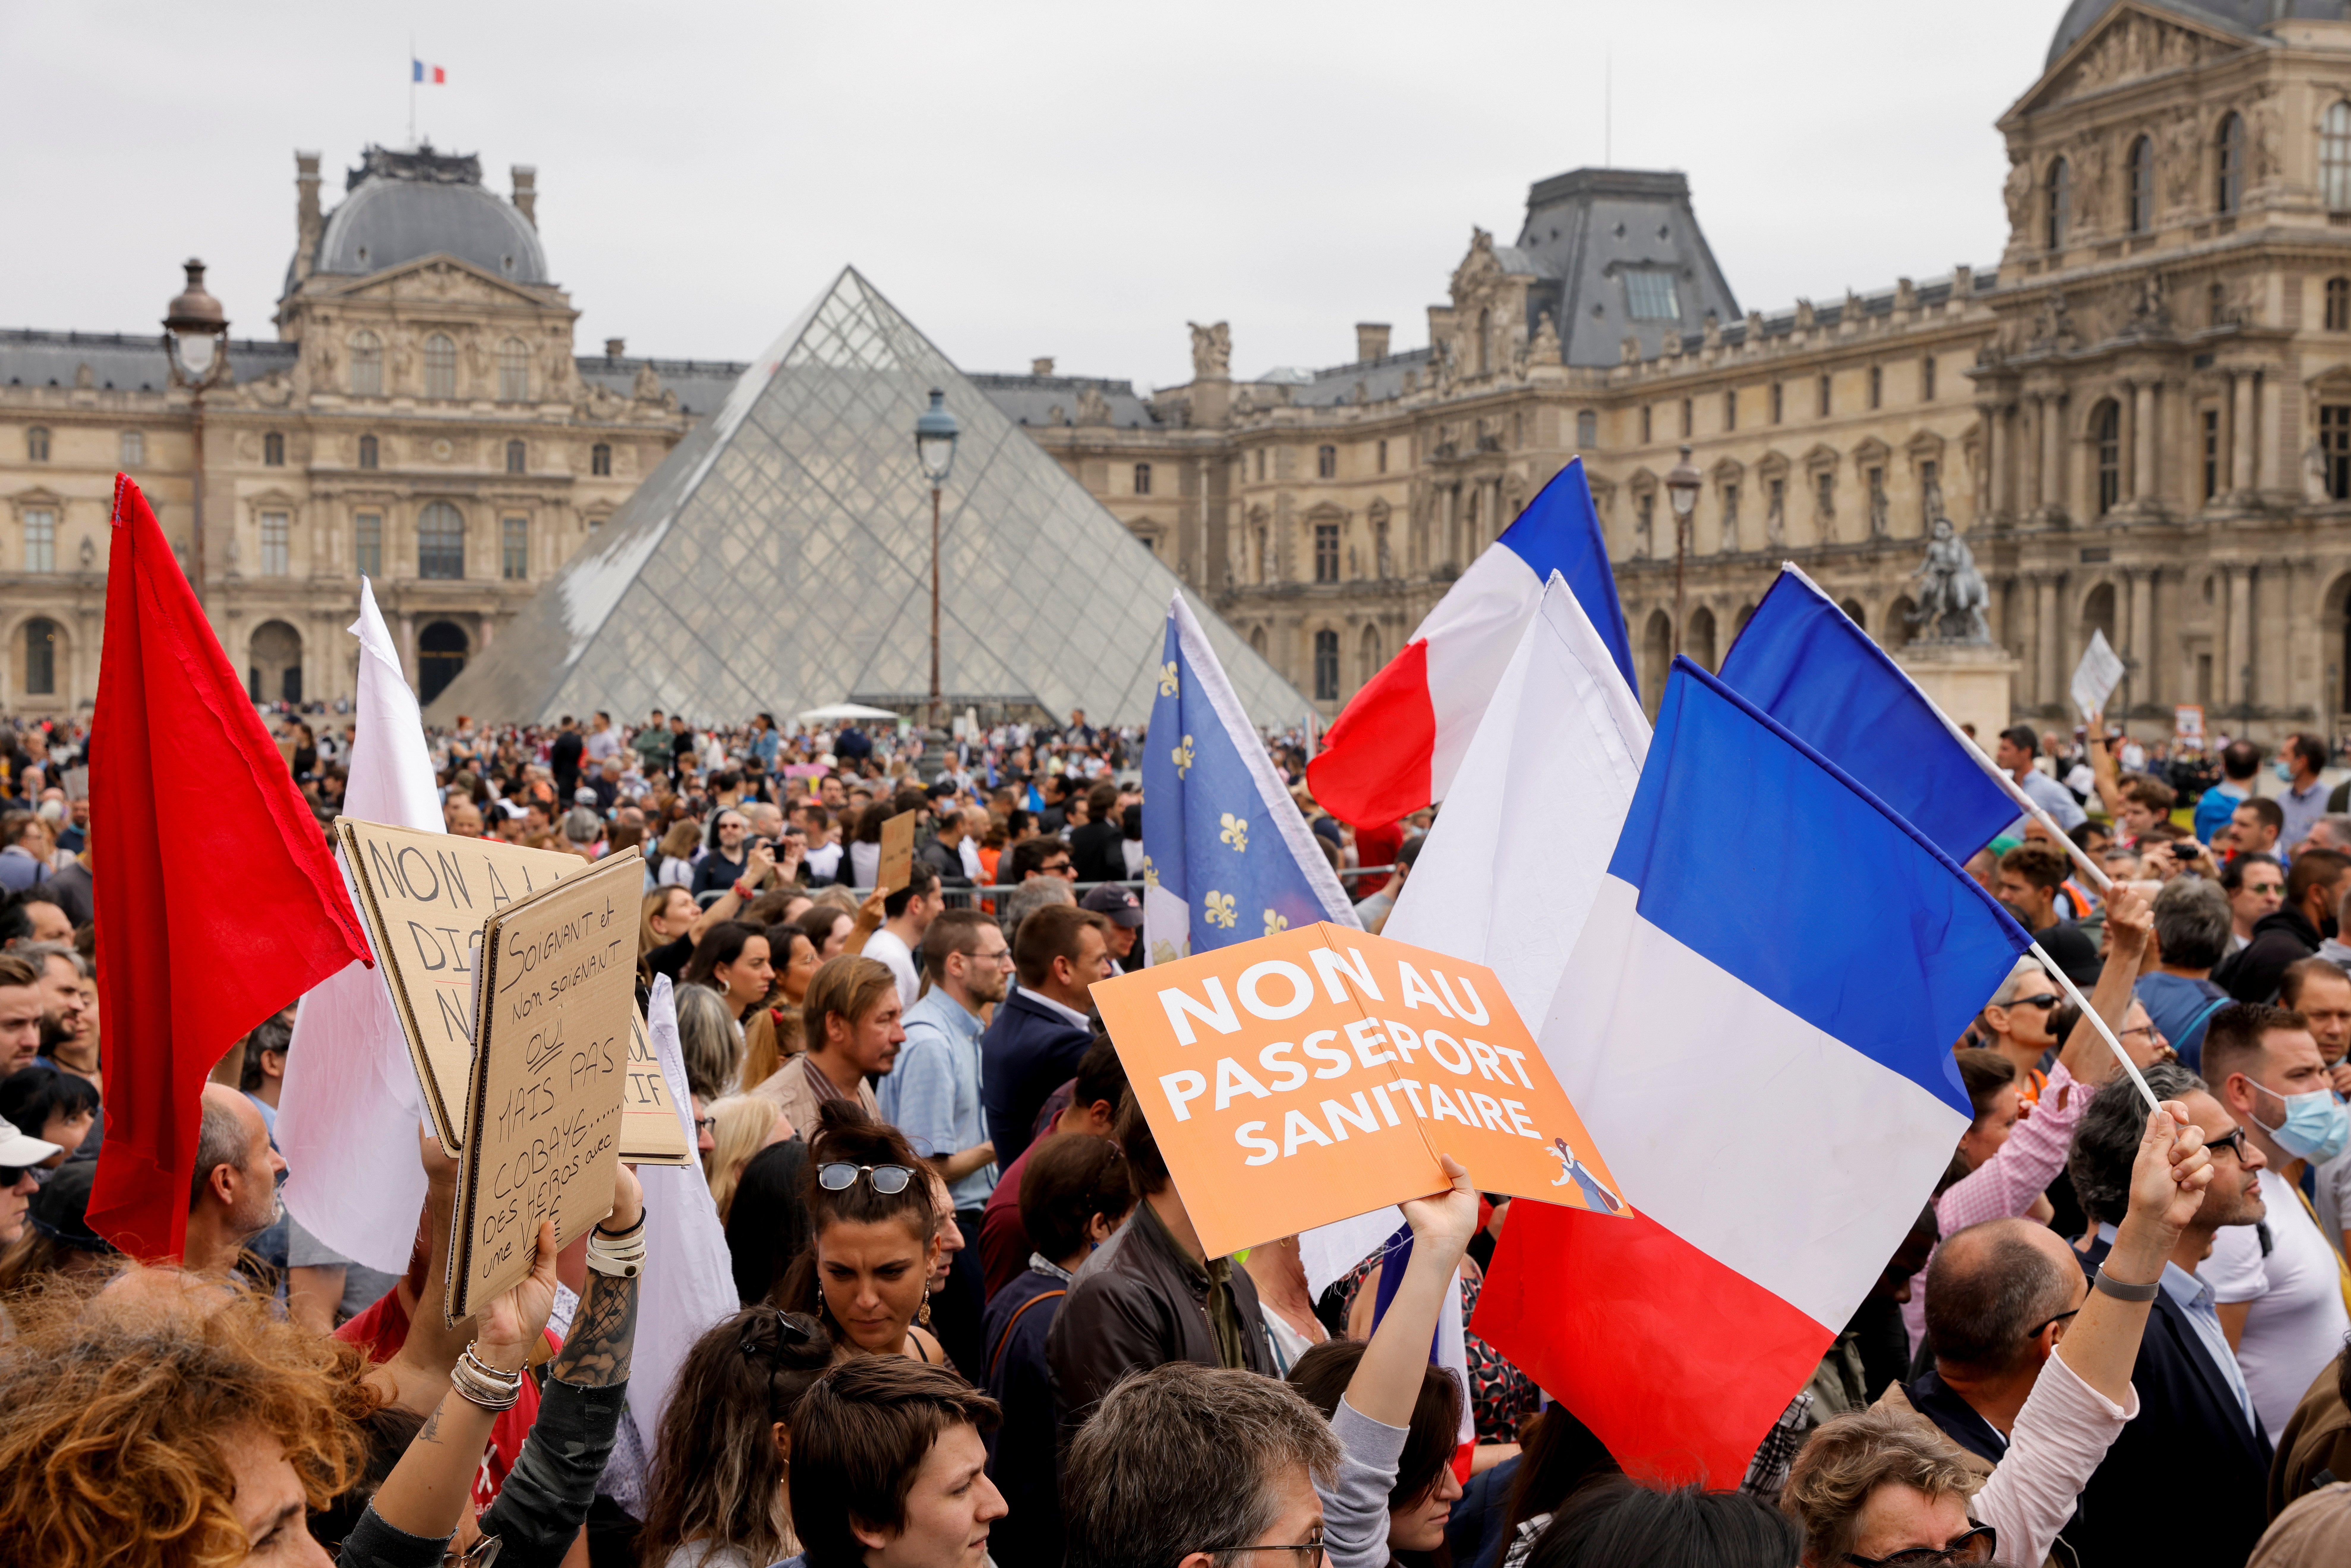 Demonstrators walk past Pyramide du Louvre during a protest against the new measures announced by French President Emmanuel Macron to fight the coronavirus disease (COVID-19) outbreak, in Paris, France, July 17, 2021. REUTERS/Pascal Rossignol